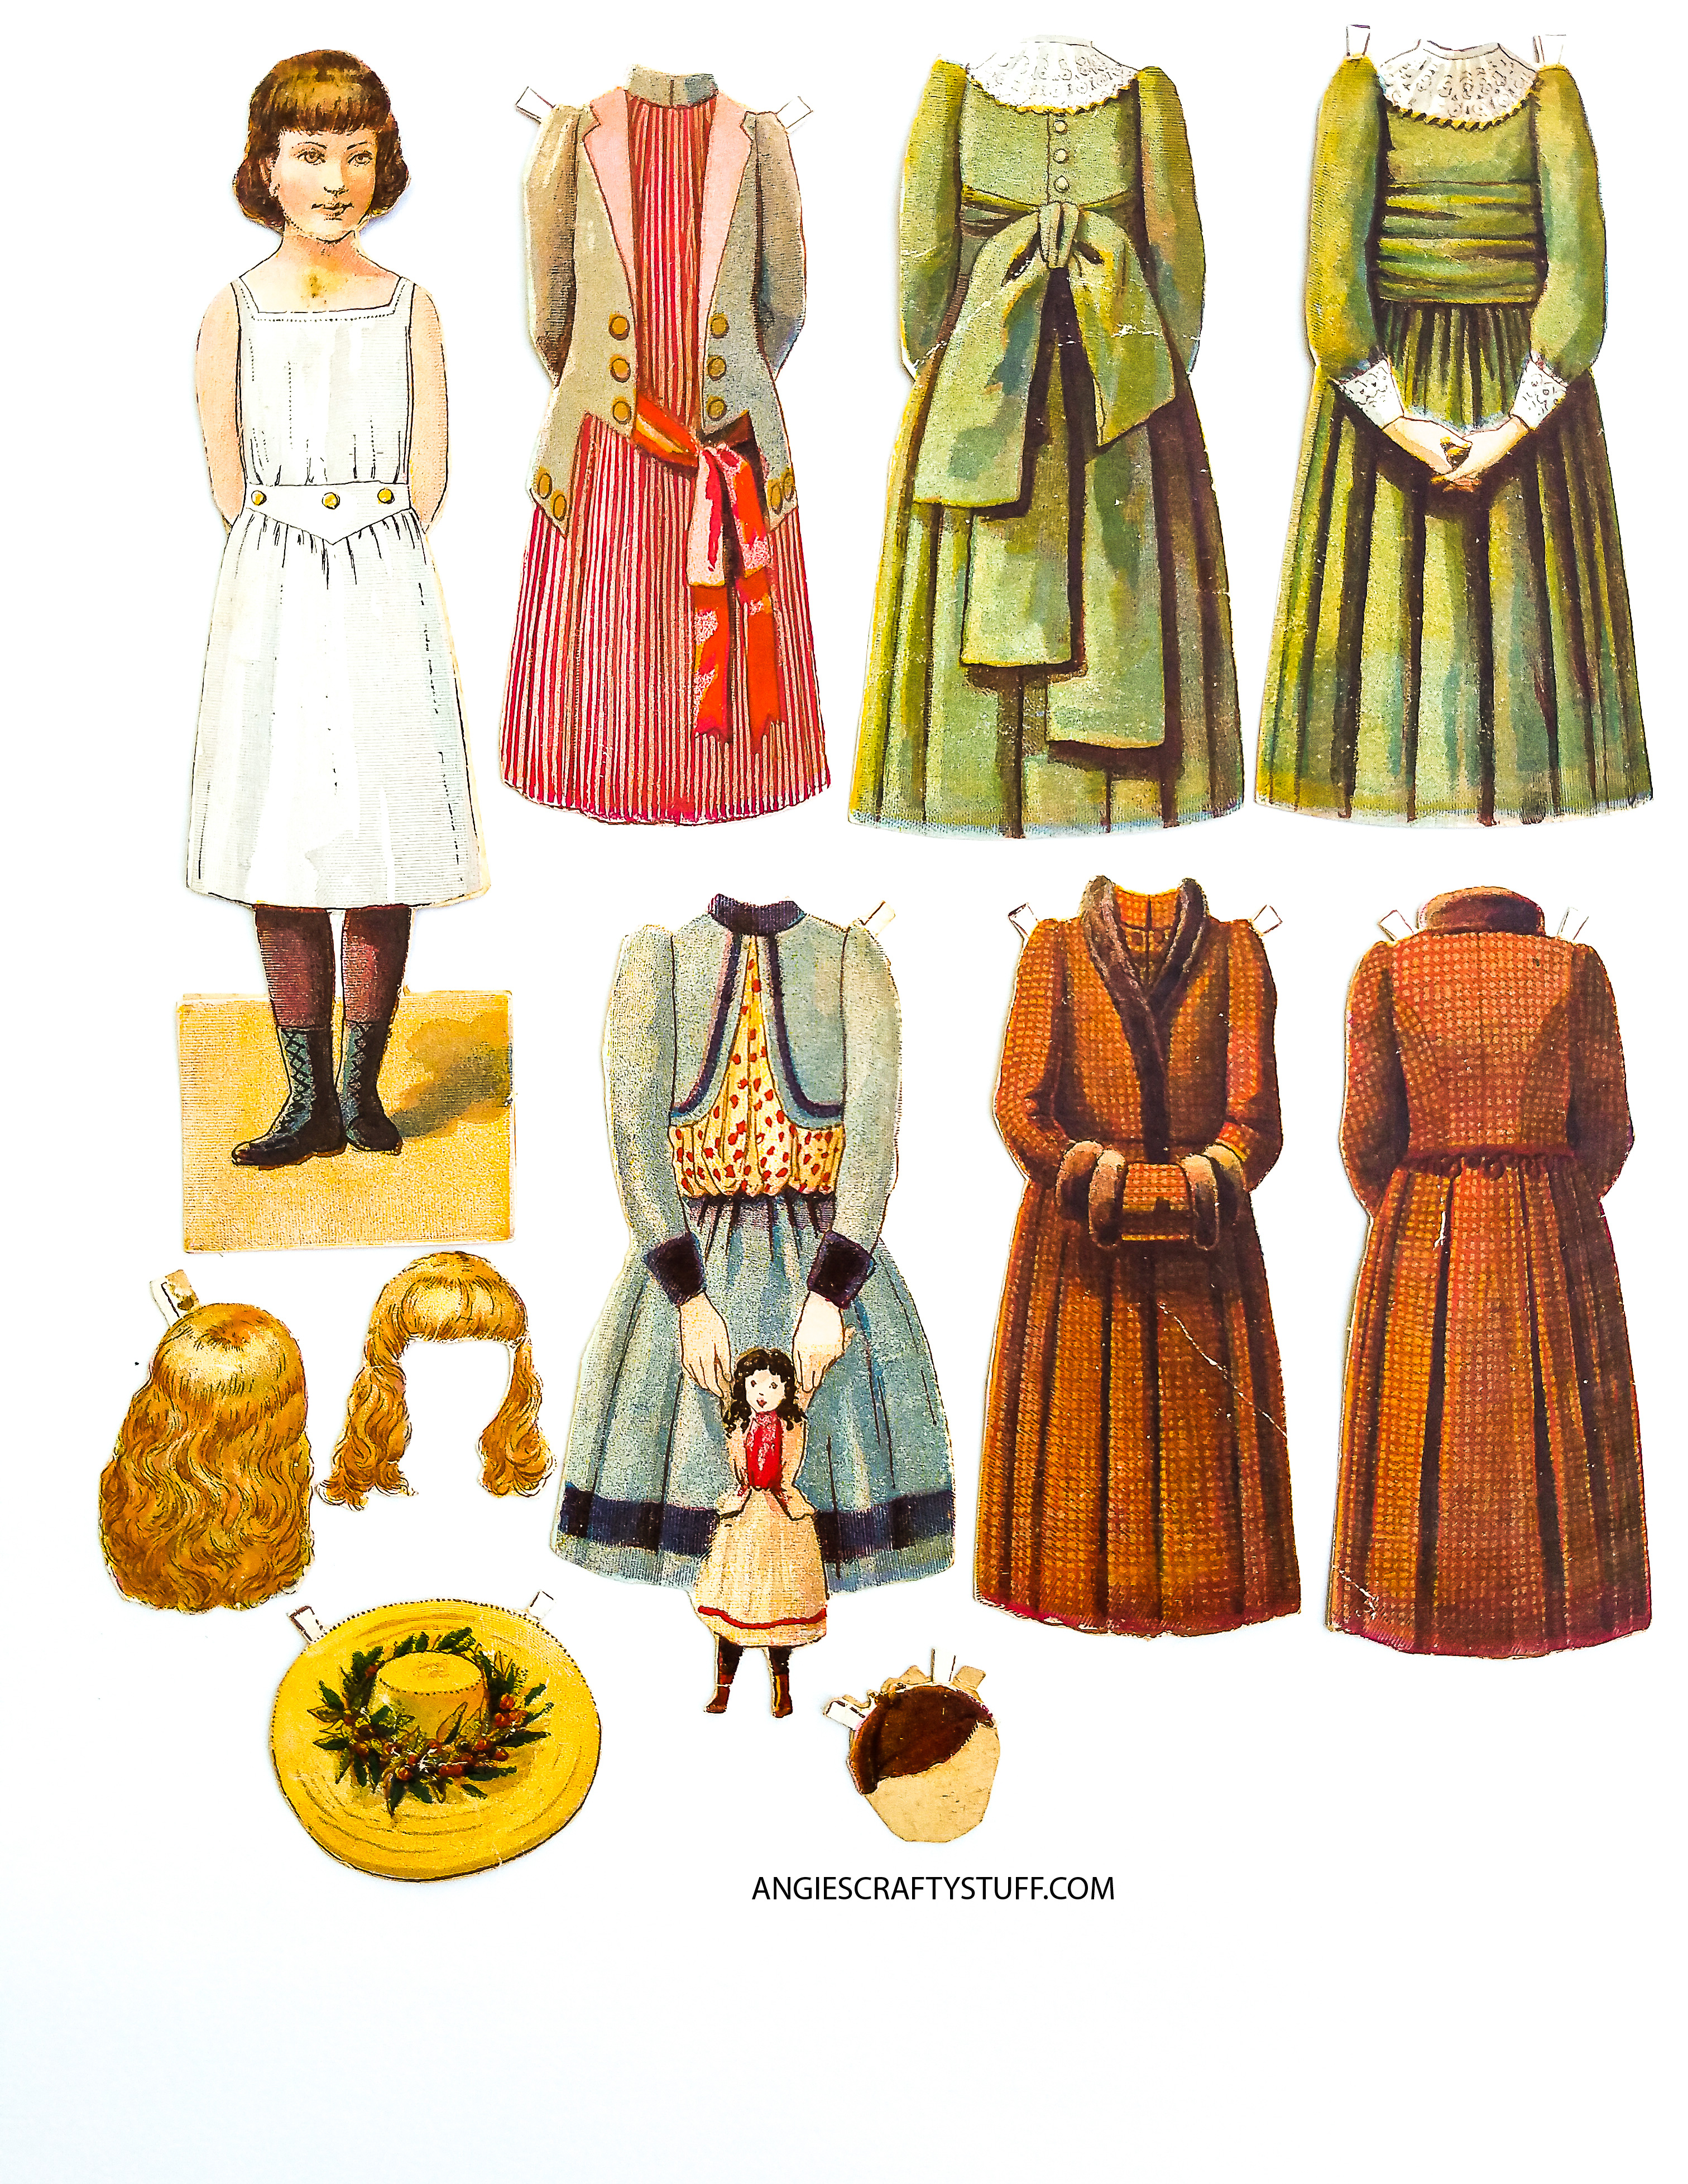 vintage clipart children  paper dolls and wicker chairs paper doll clip art holding hands paper doll clip art images